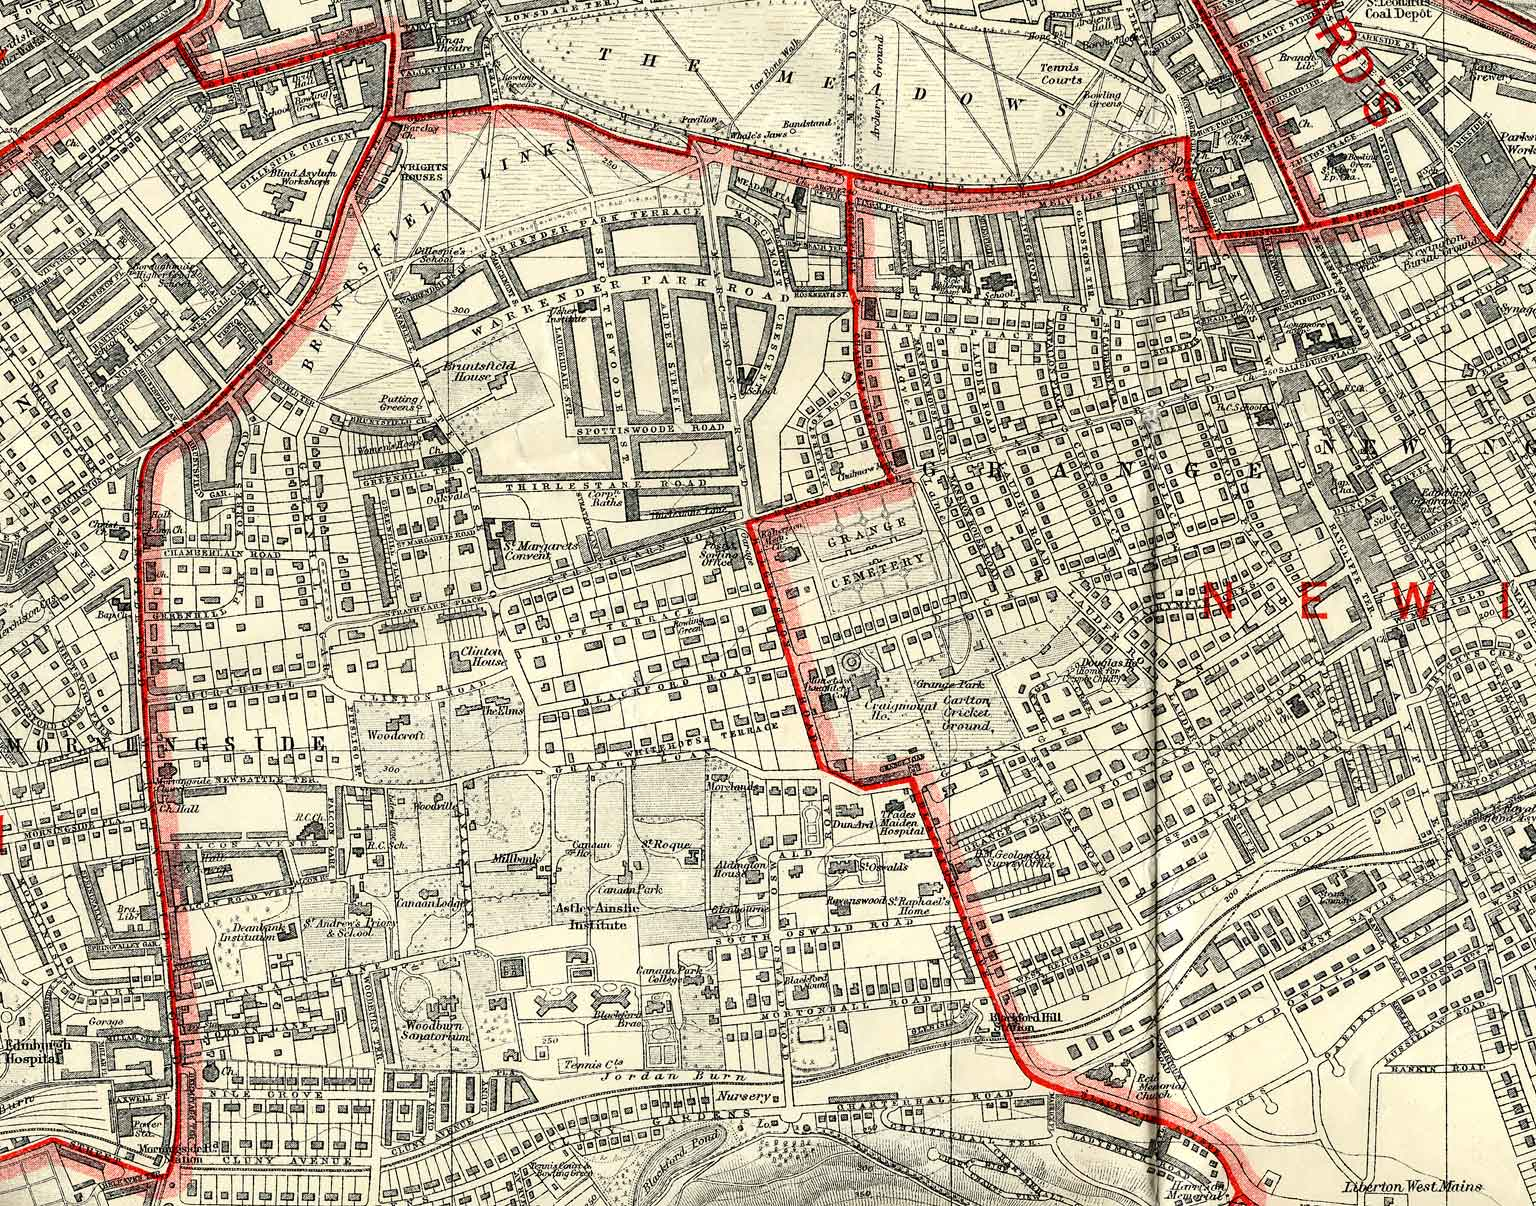 Edinburgh and Leith map, 1925  -  North Edinburgh section